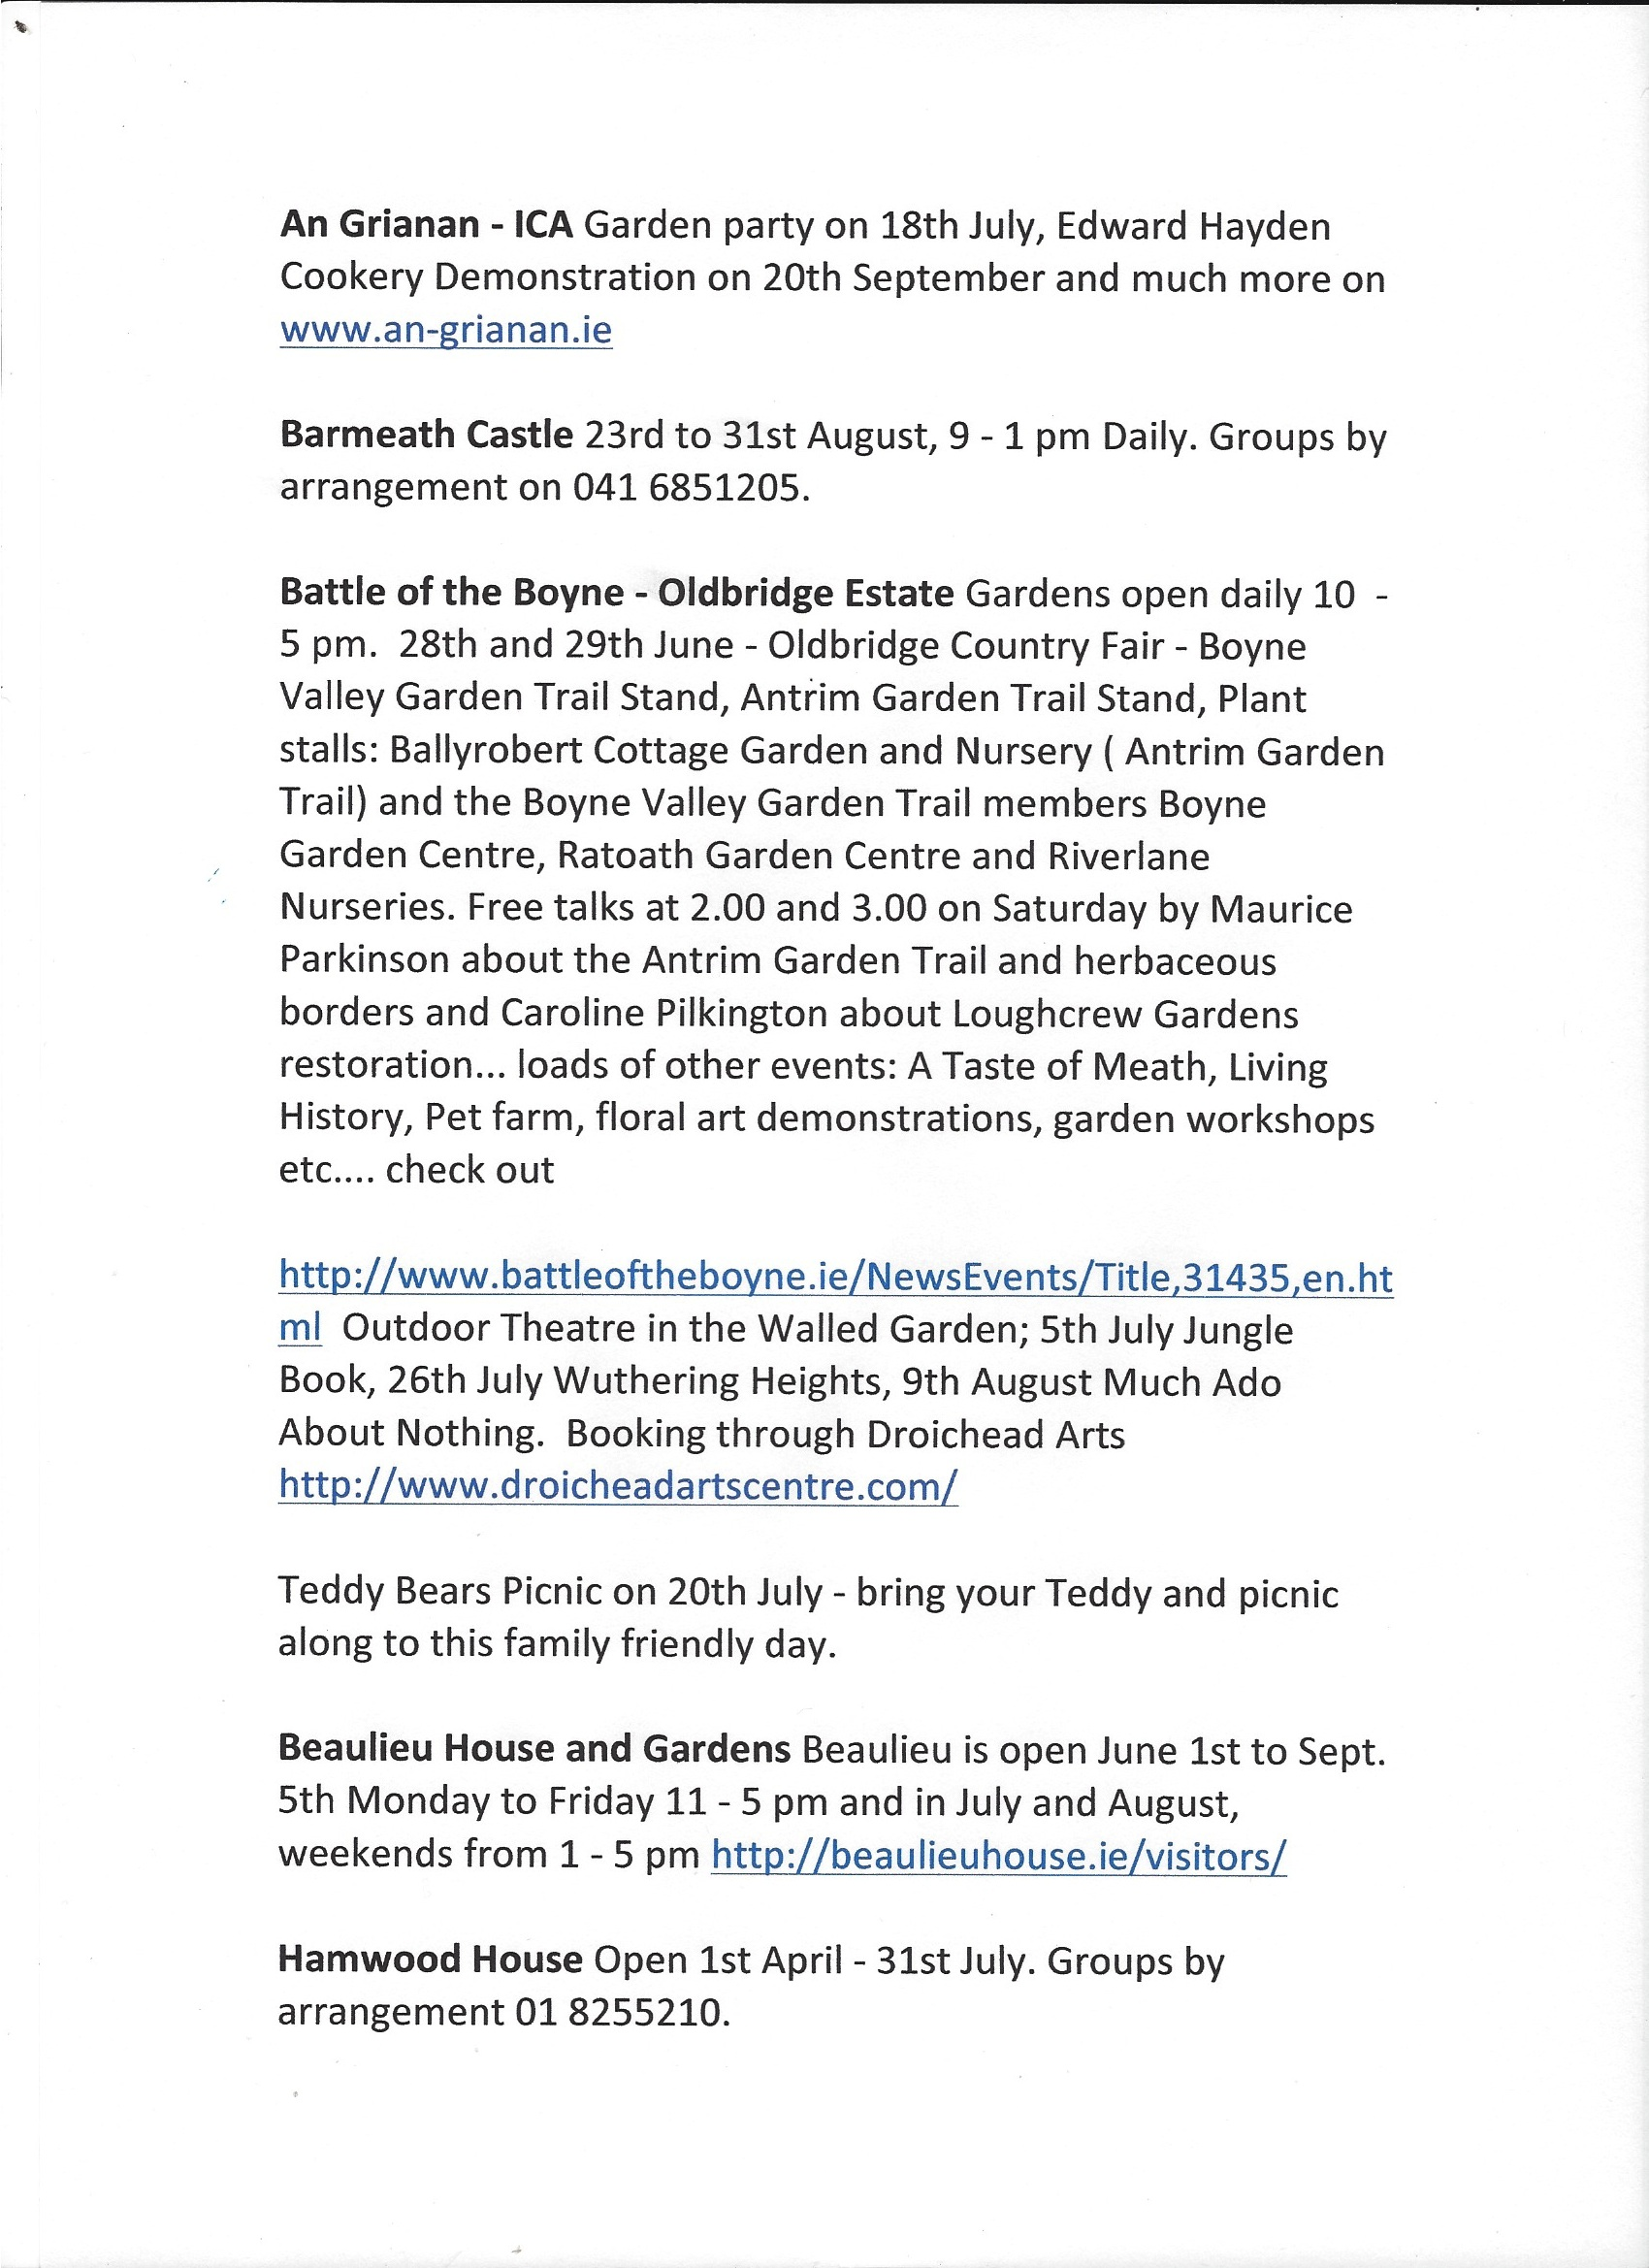 Things to see and Do 2014 scan